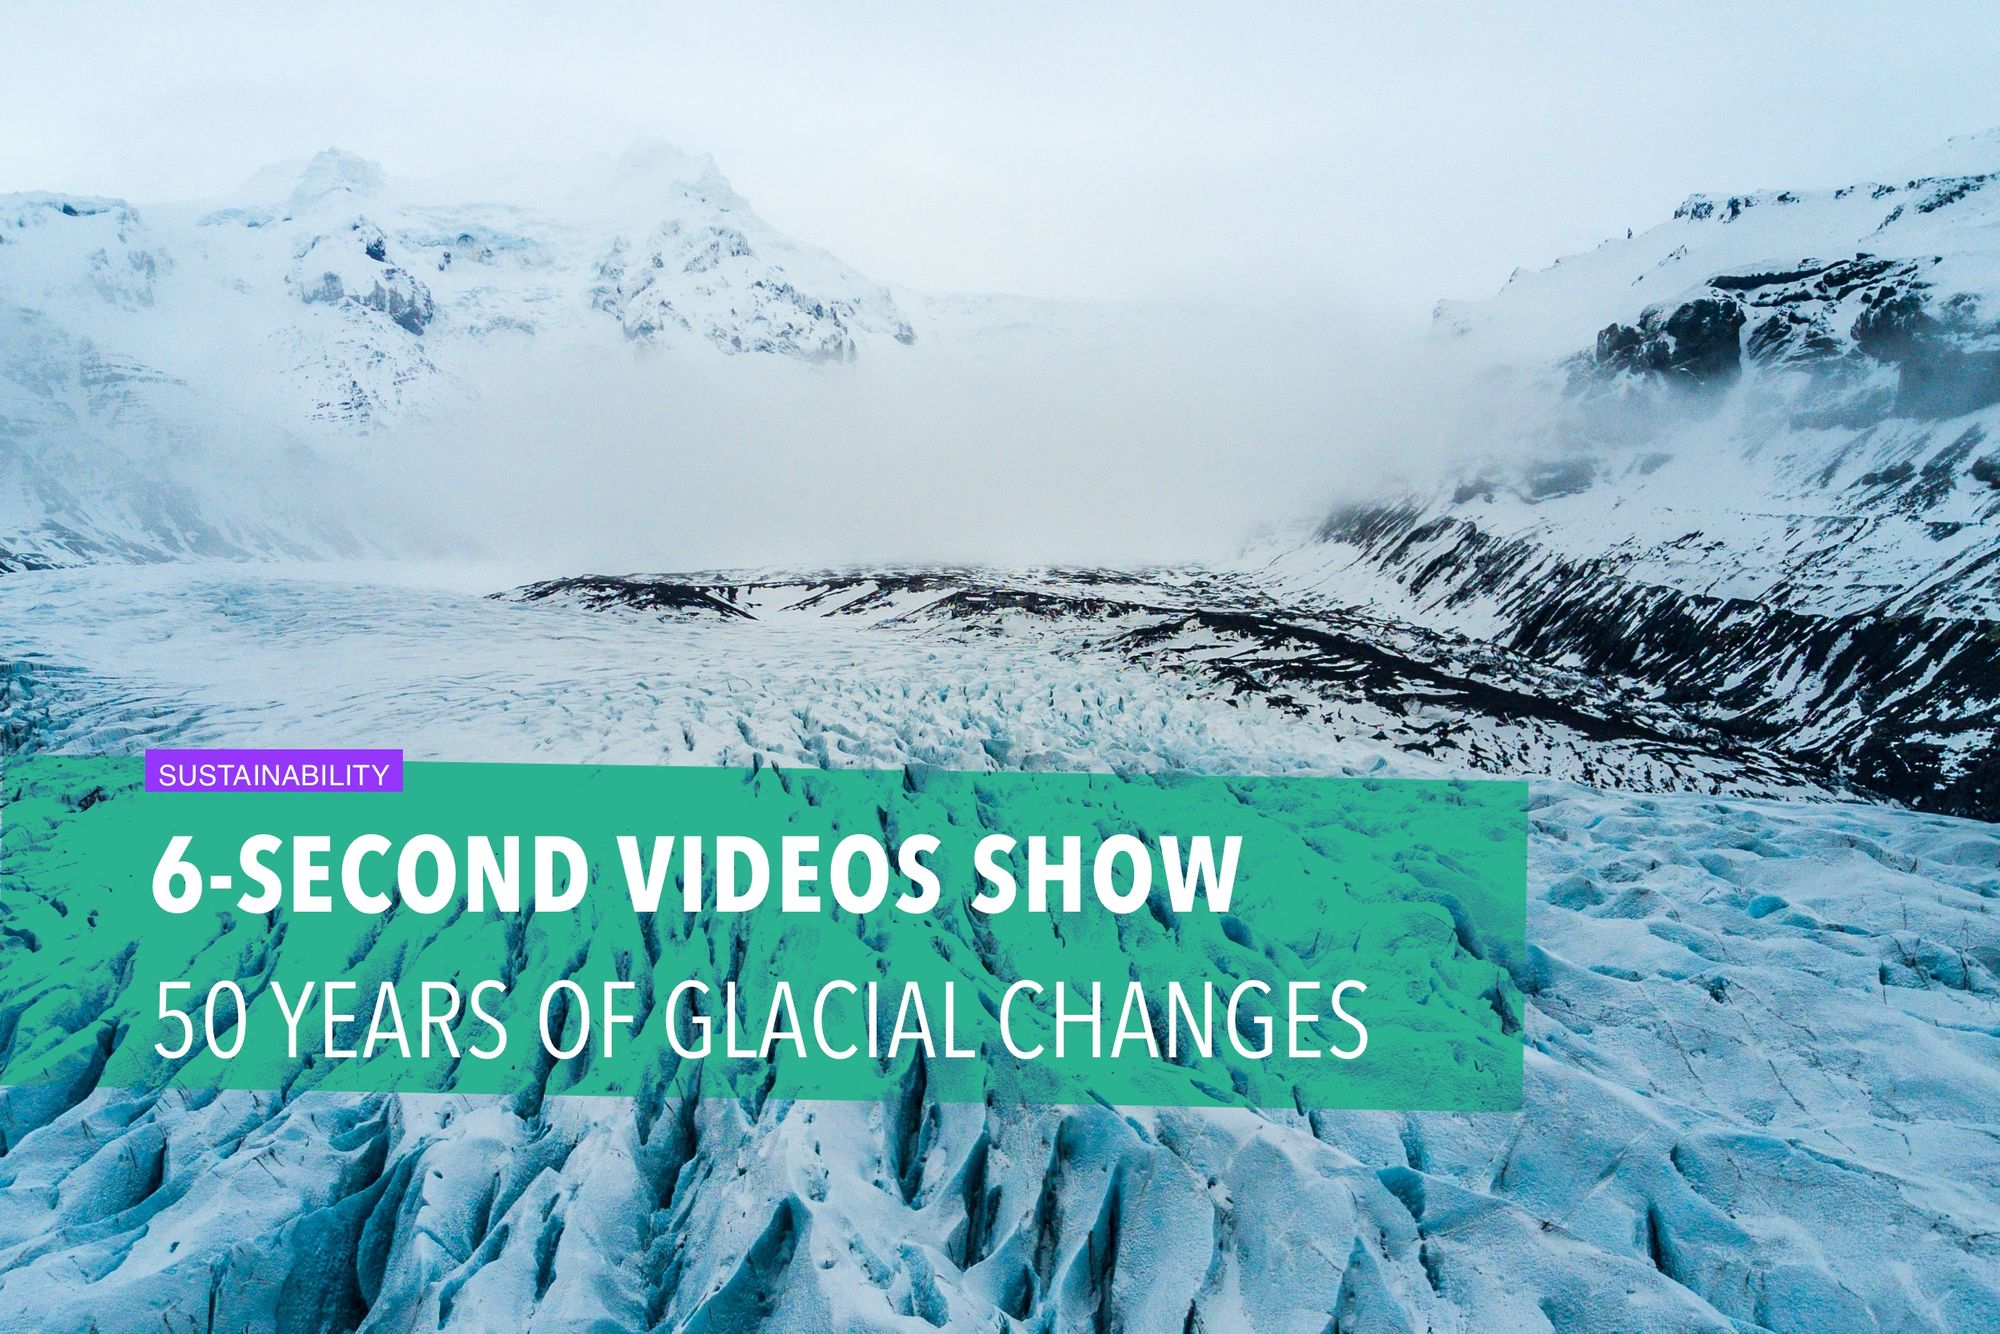 6-second videos show 50 years of glacial changes